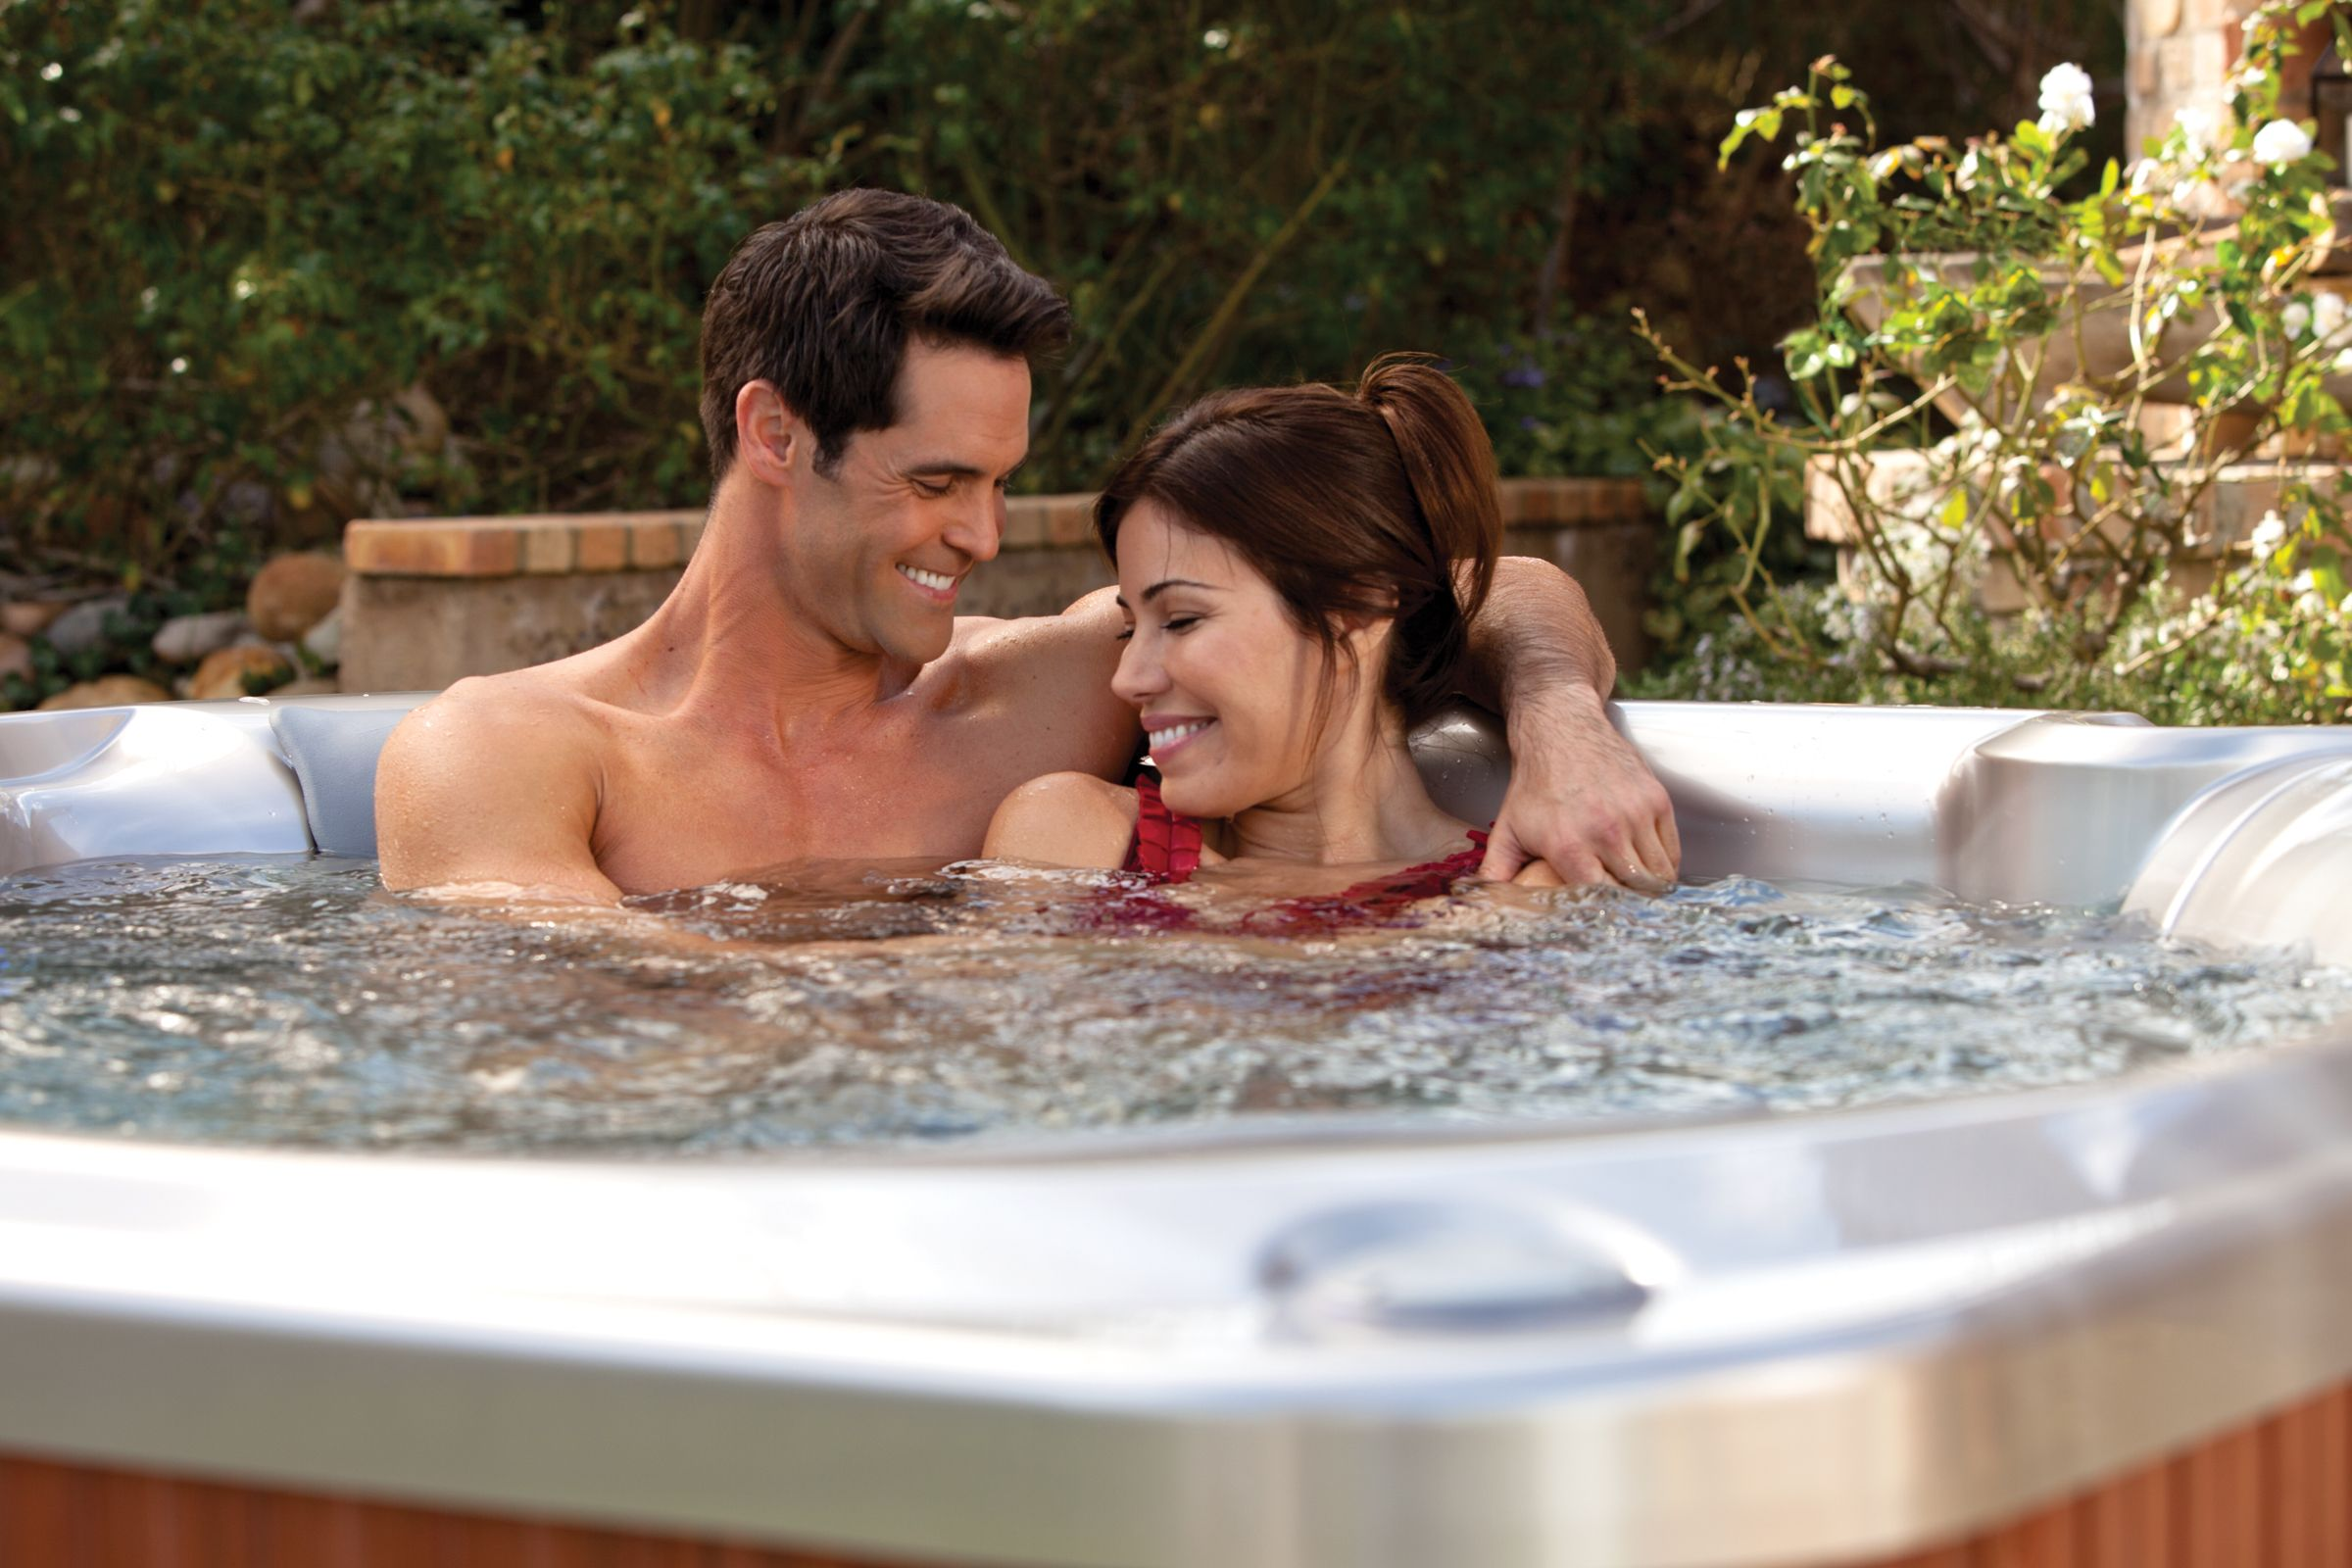 Auto Ship Helps You Care for Your Hot Tub